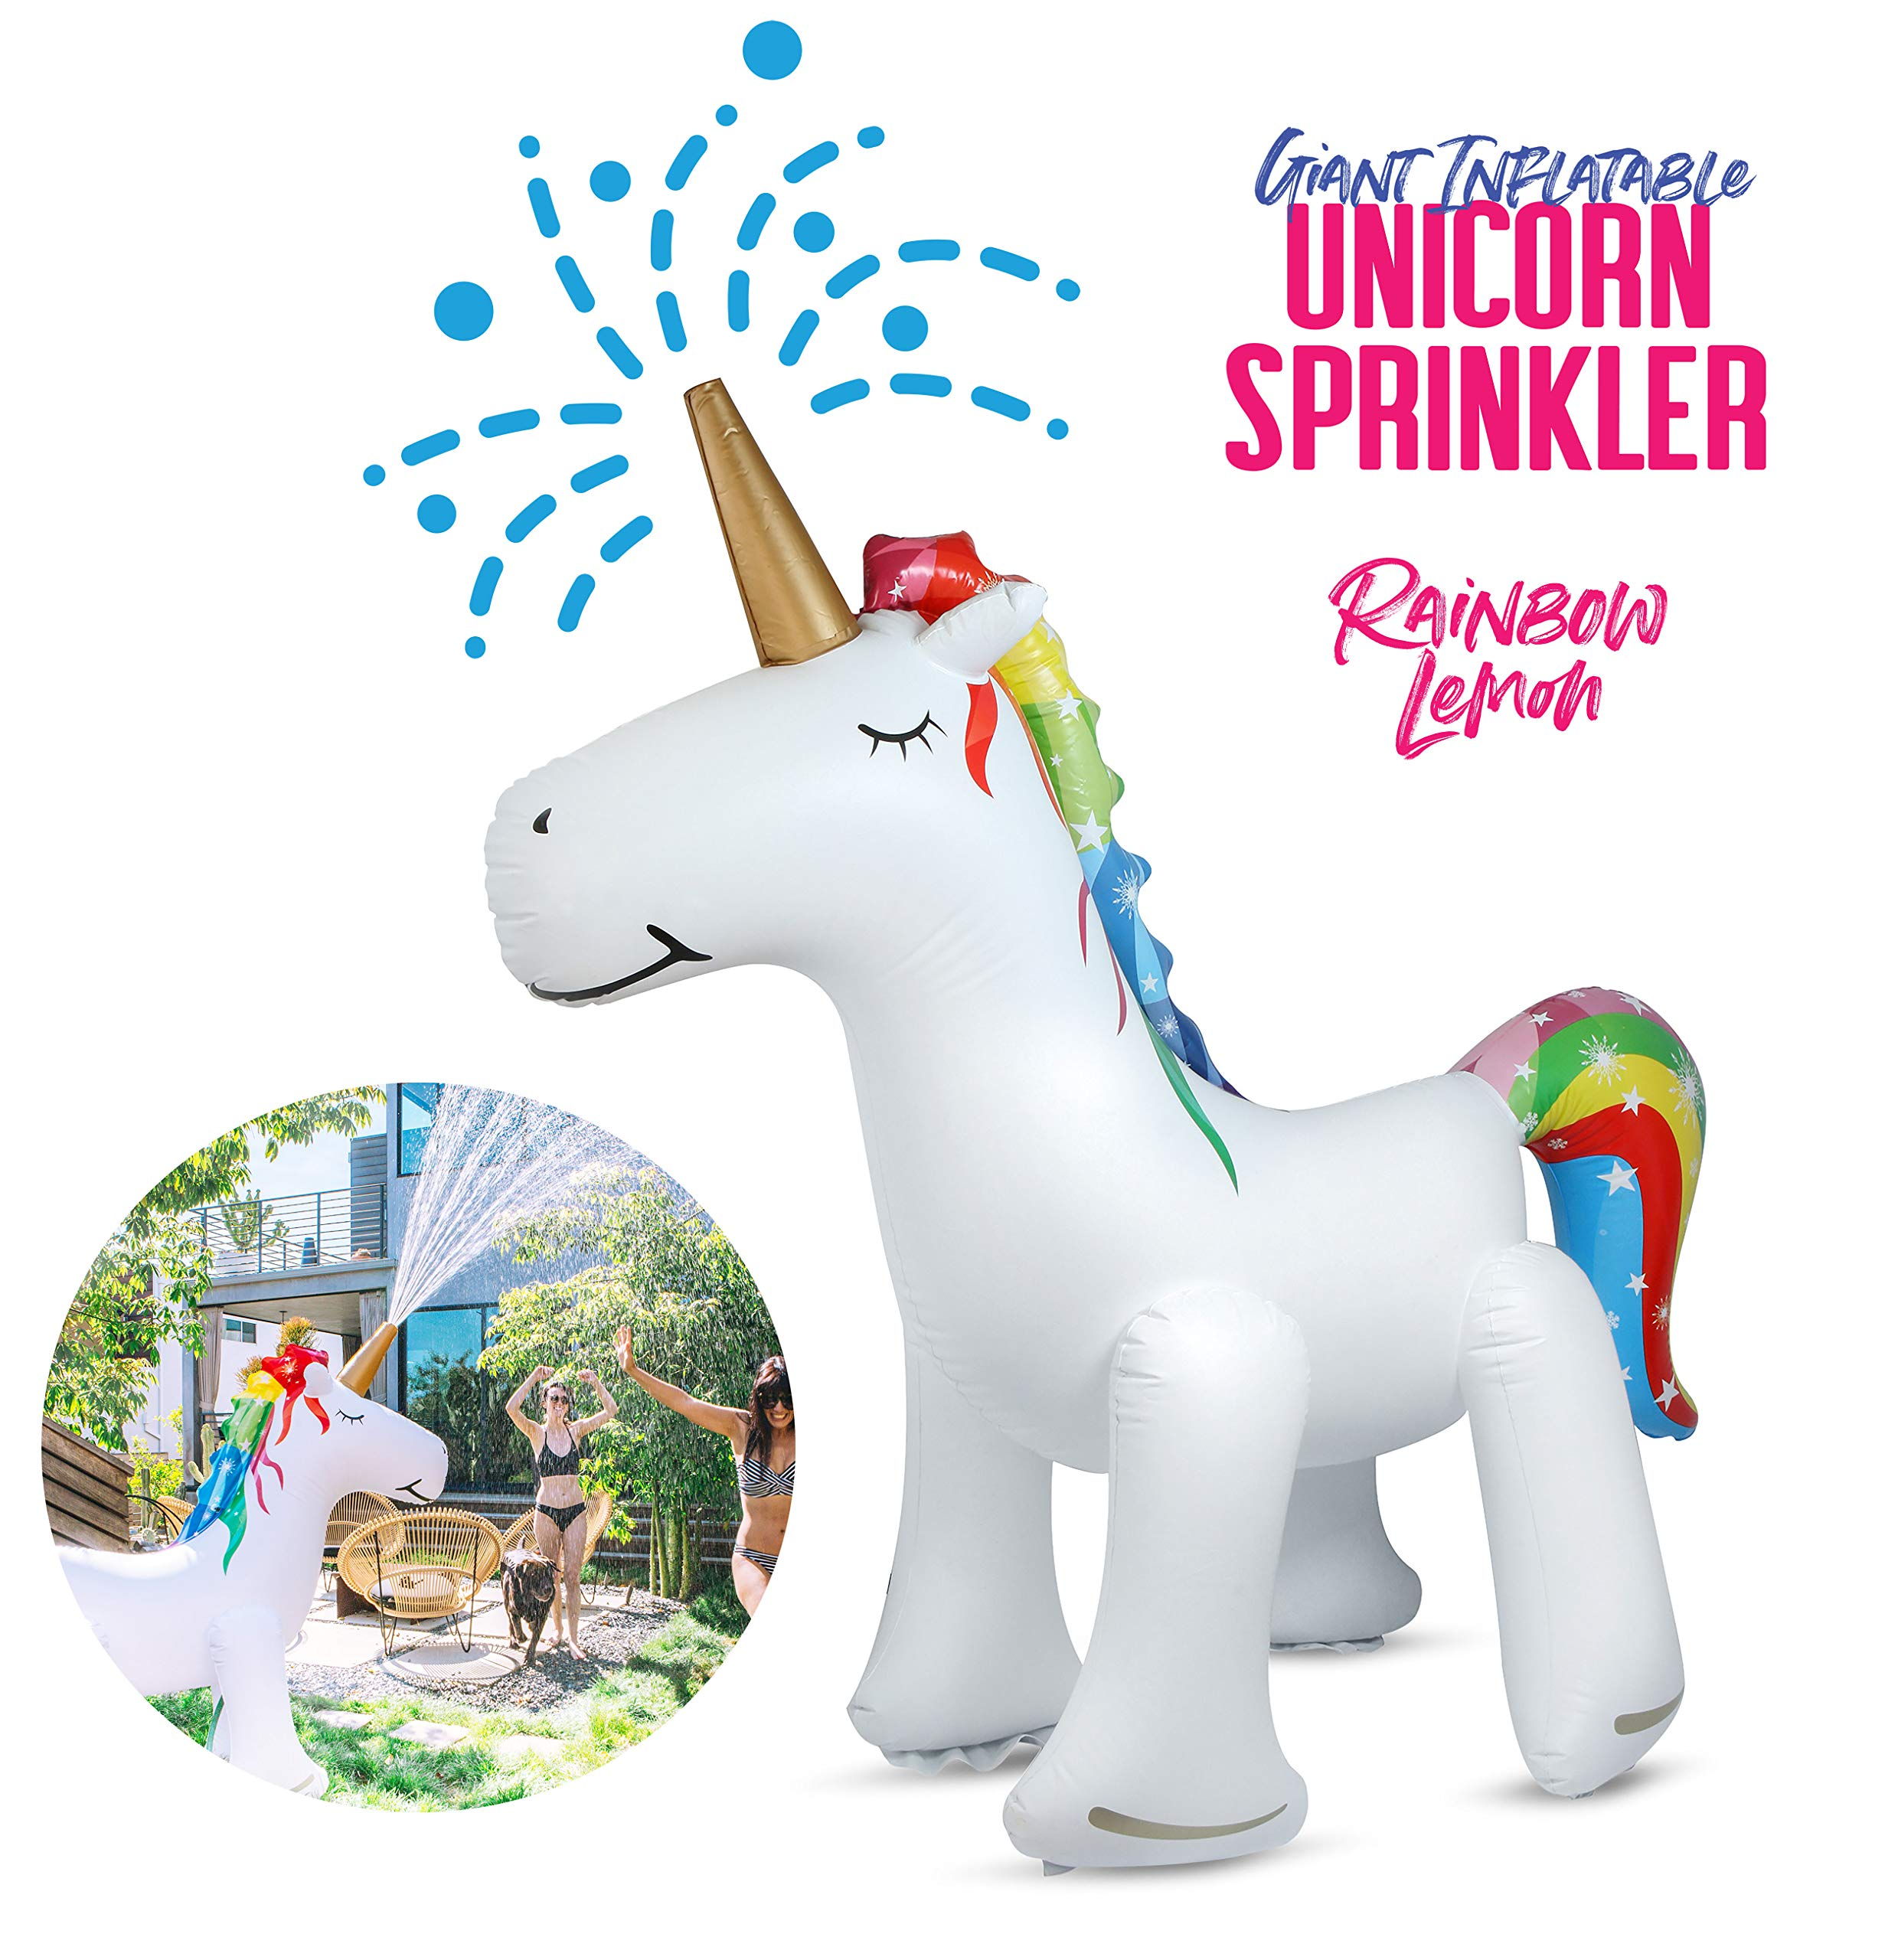 Rainbow Lemon Giant Inflatable Unicorn Sprinkler 3